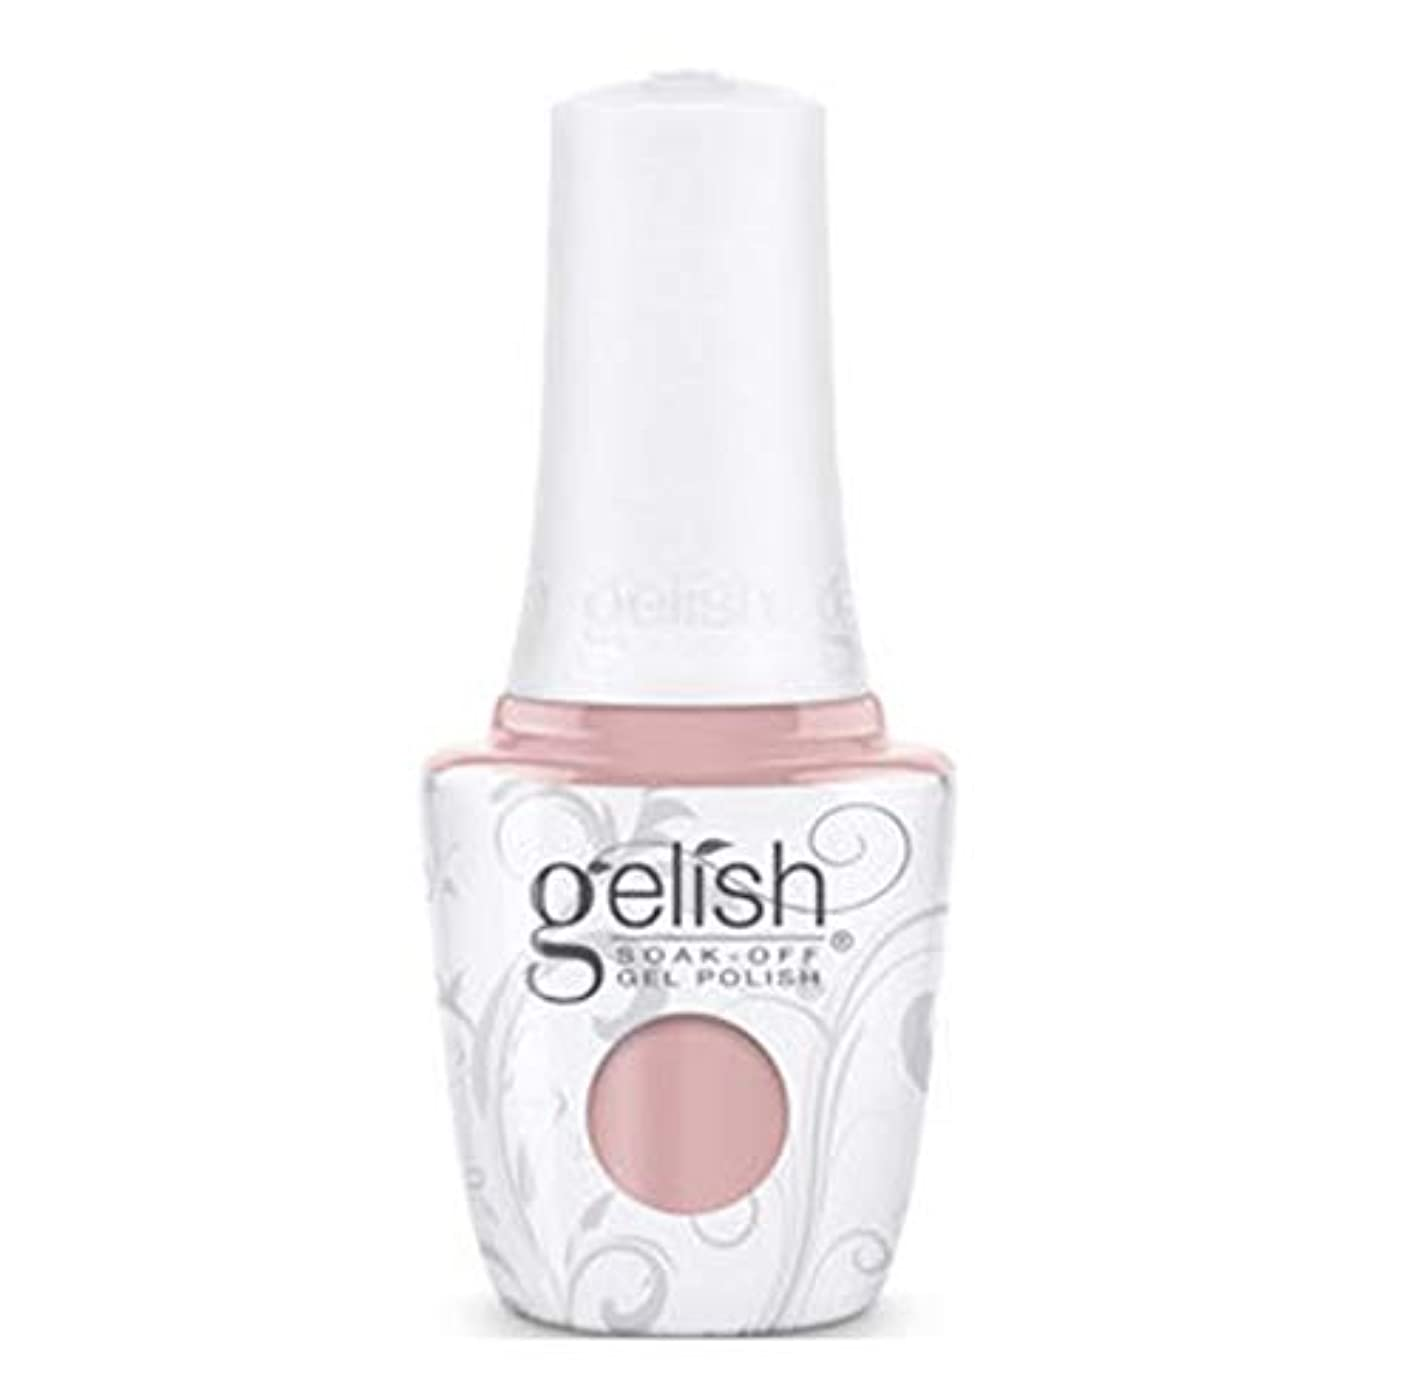 あいまいな調べる珍味Harmony Gelish - The Color of Petals - Gardenia My Heart - 15 mL / 0.5 oz